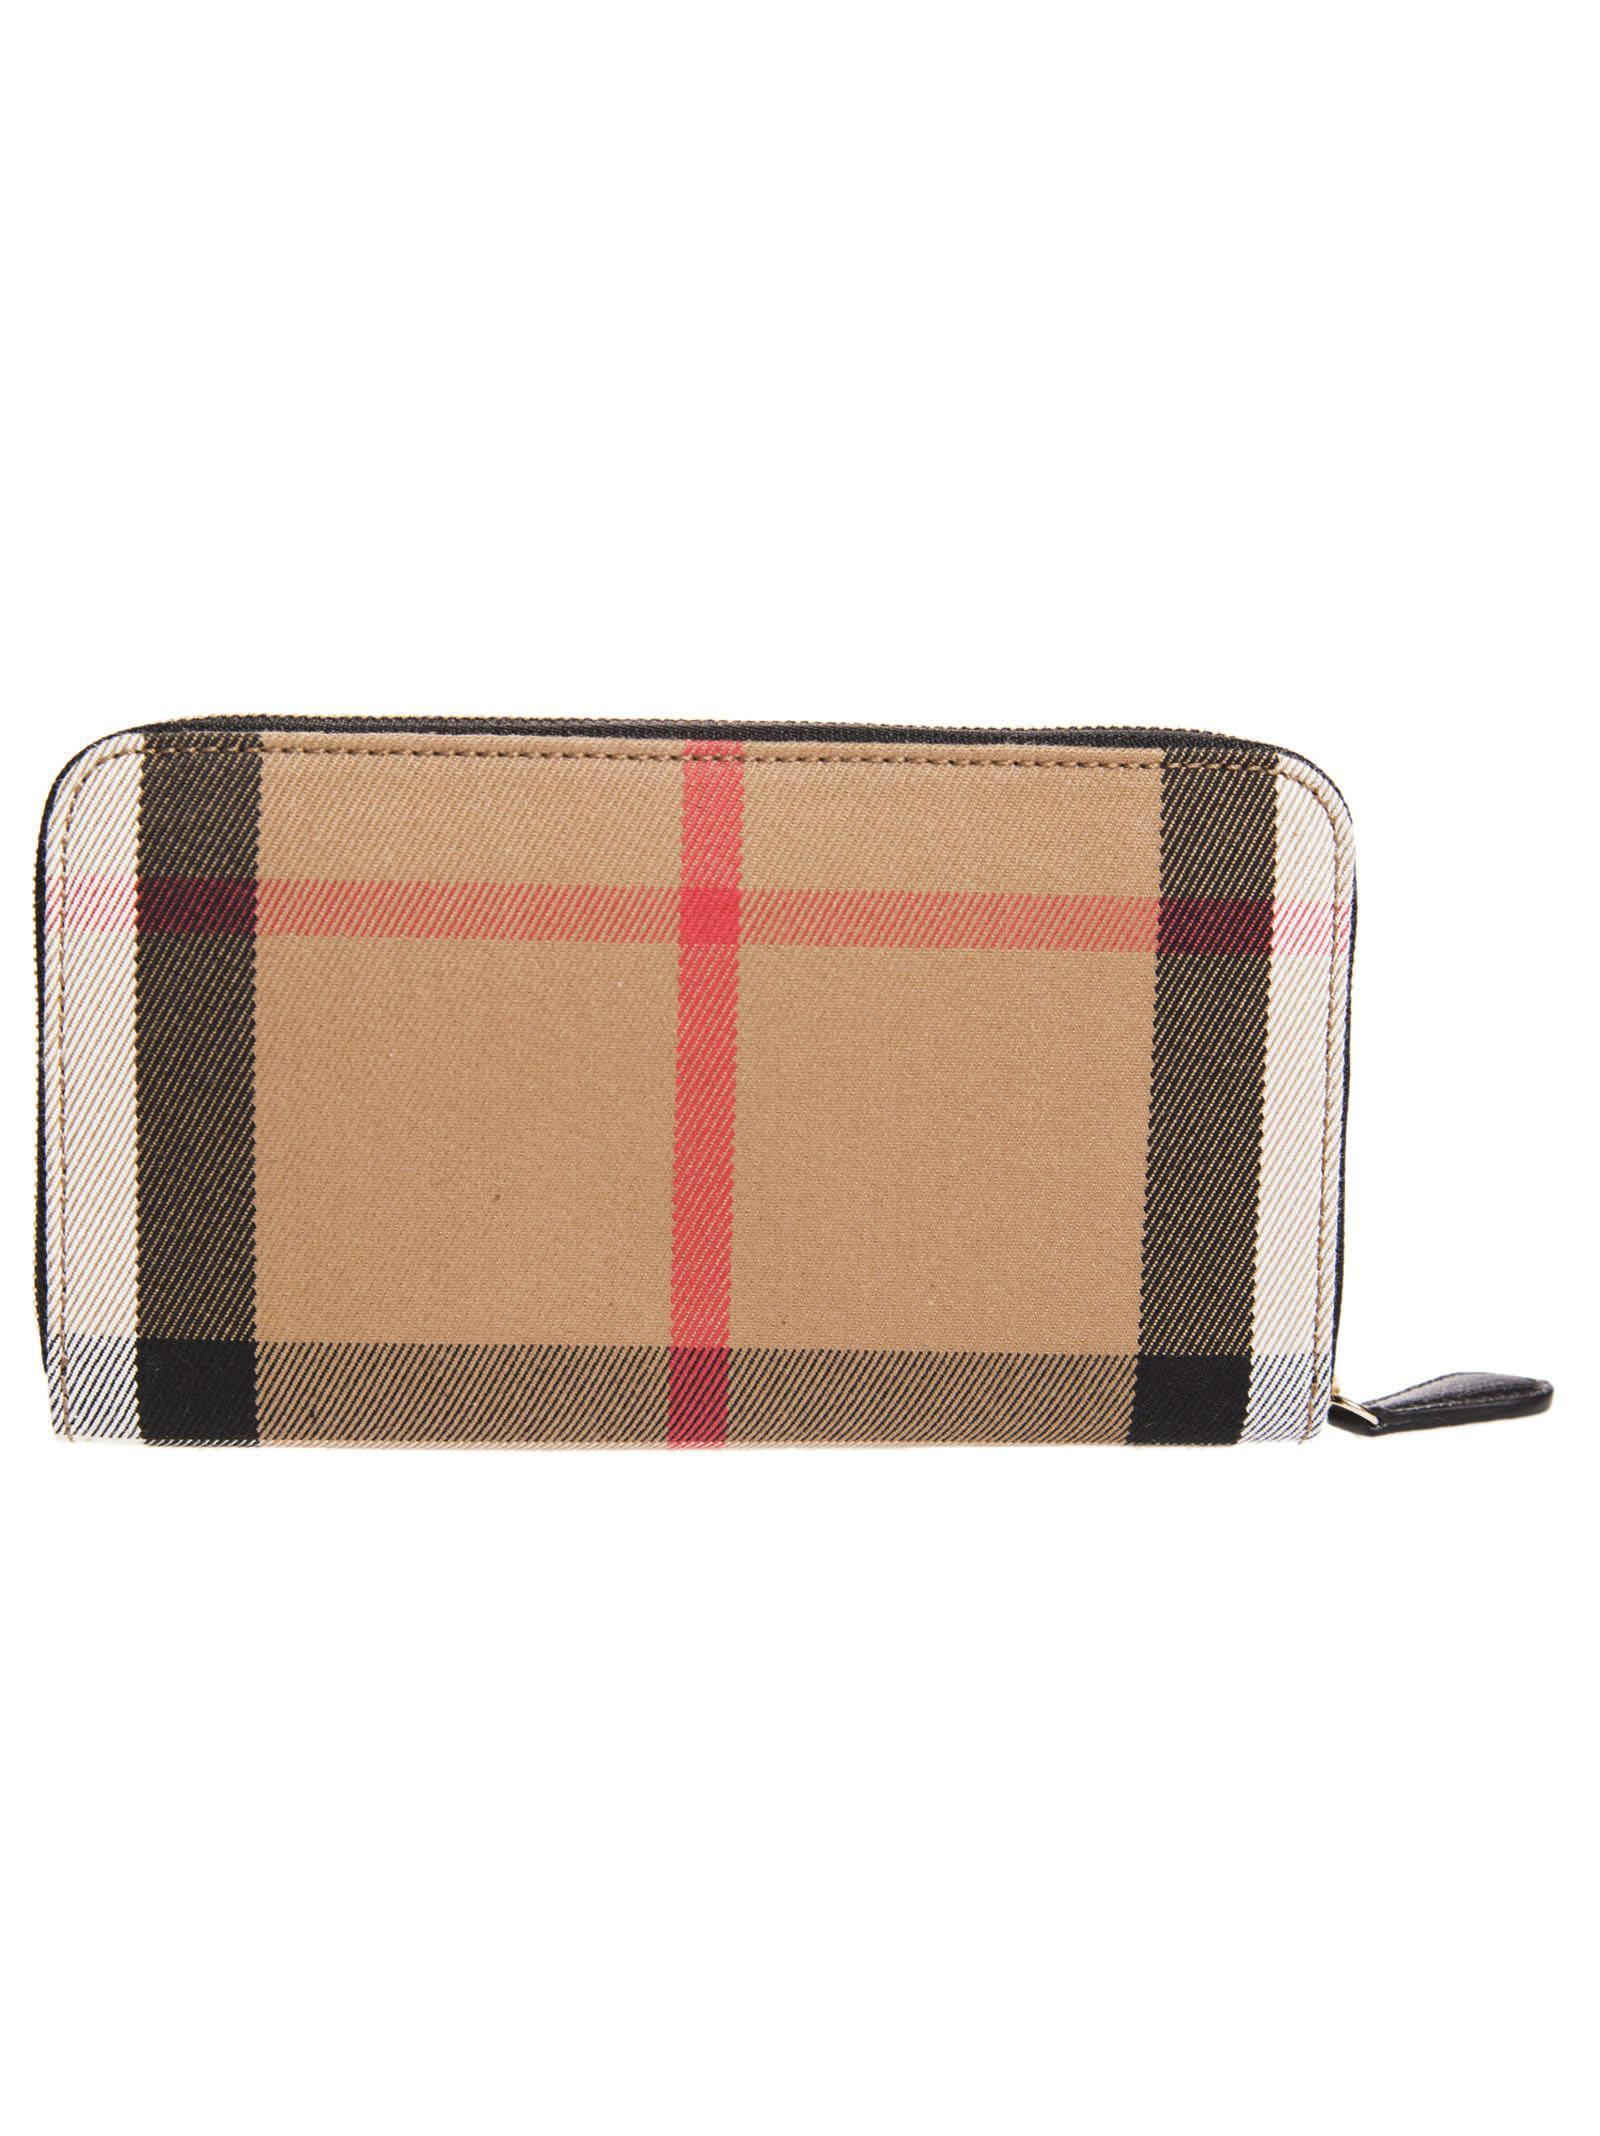 送料込 Burberry House Check Zip Around Wallet 財布